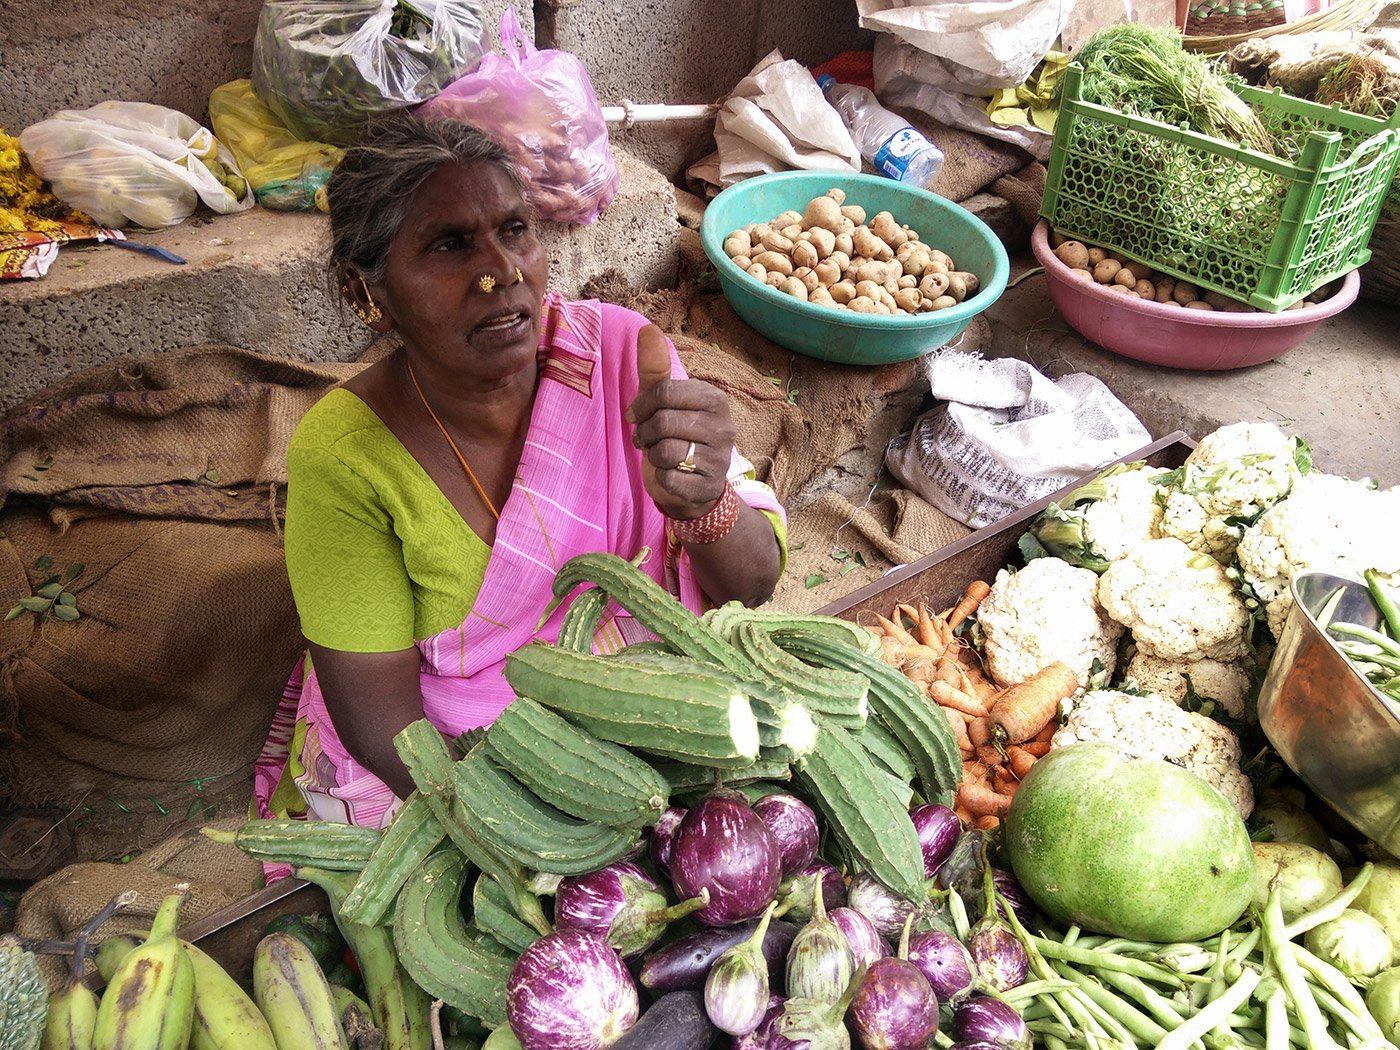 An elderly woman selling vegetables